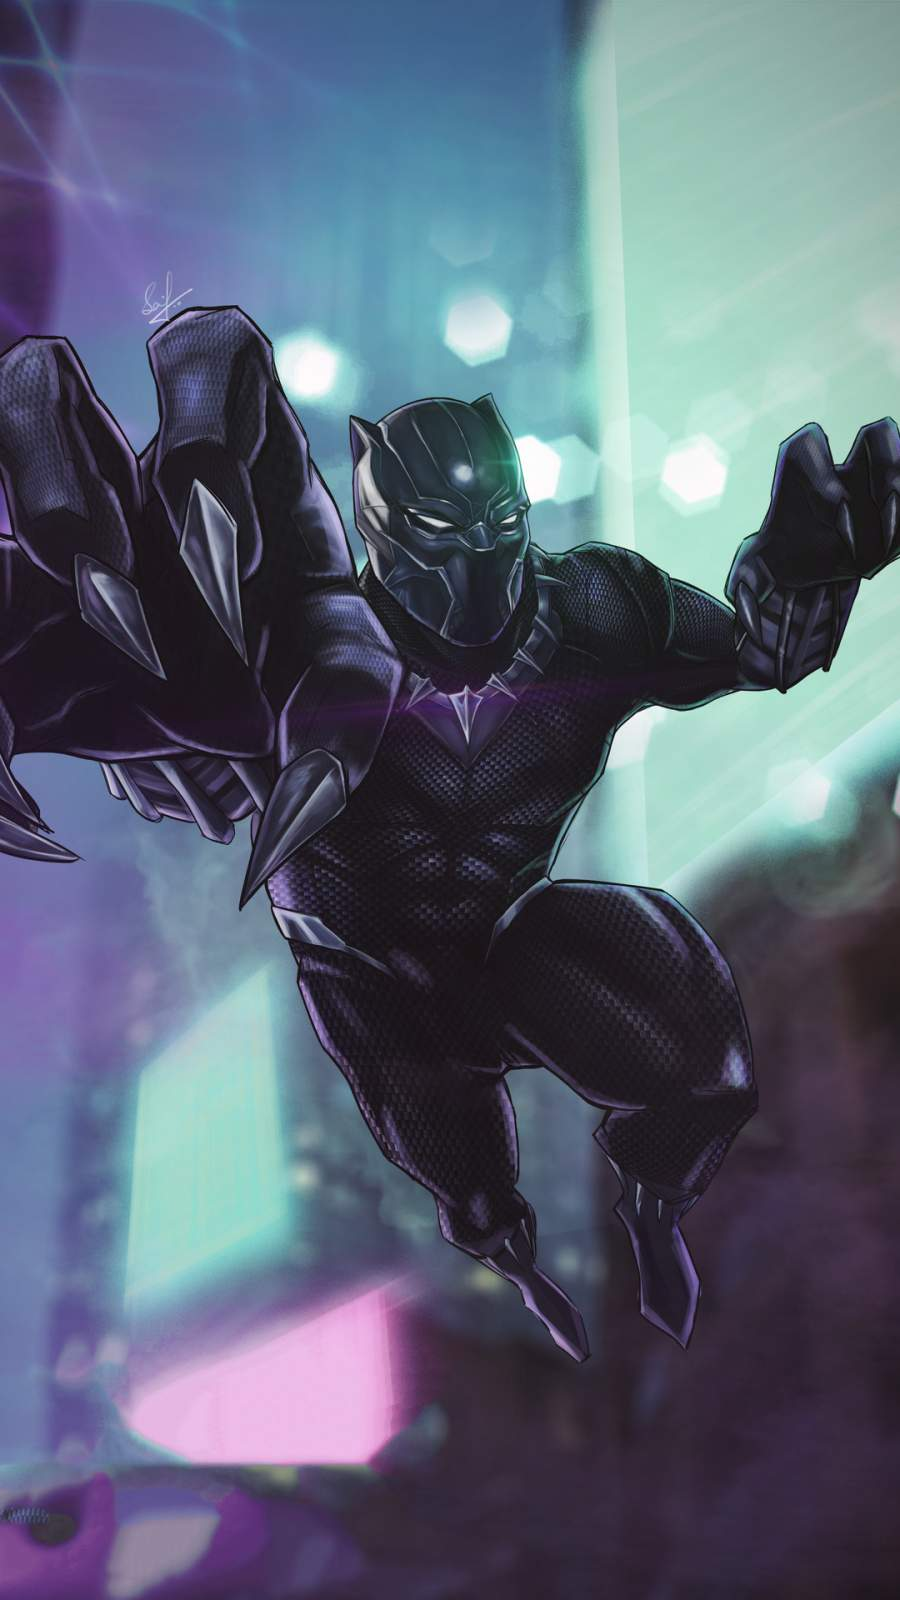 Black Panther 4K Art iPhone Wallpaper